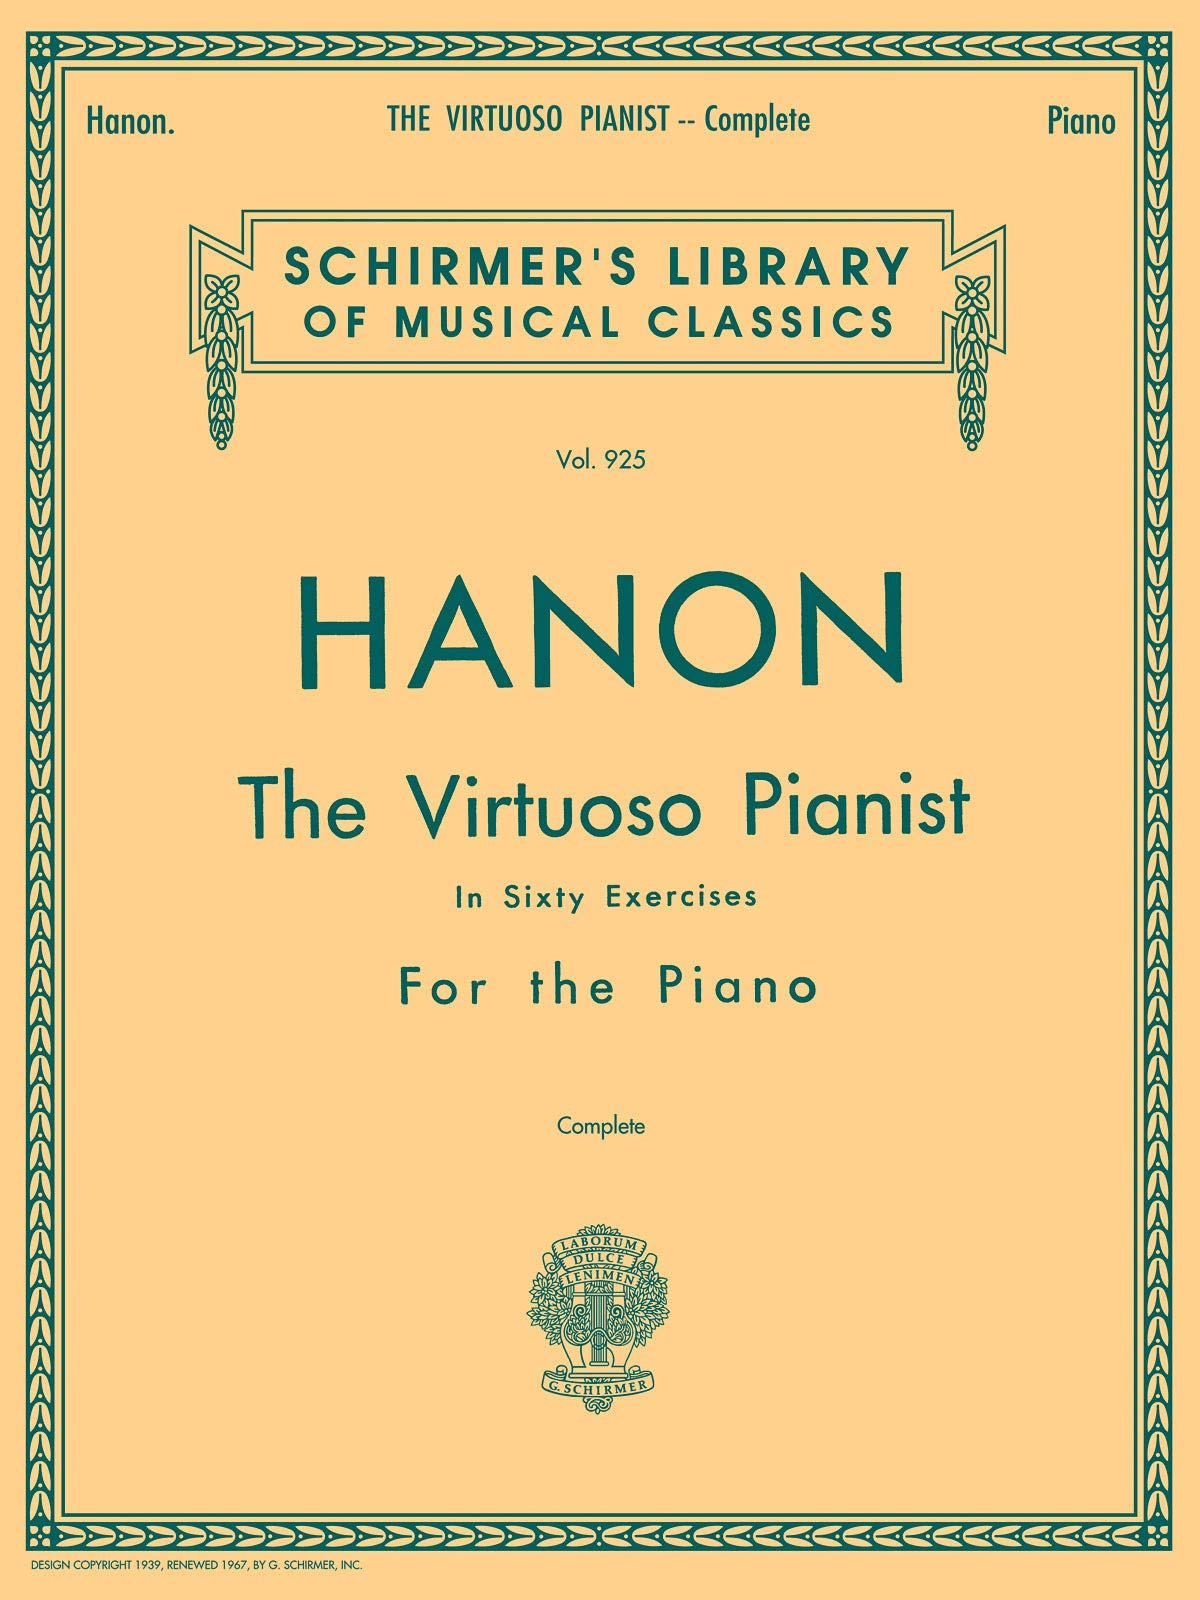 Hanon The Virtuoso Pianist In Sixty Exercises Complete Schirmer S Library Of Musical Classics Vol 925 Theodore Baker C L Hanon 9780793525447 Amazon Com Books